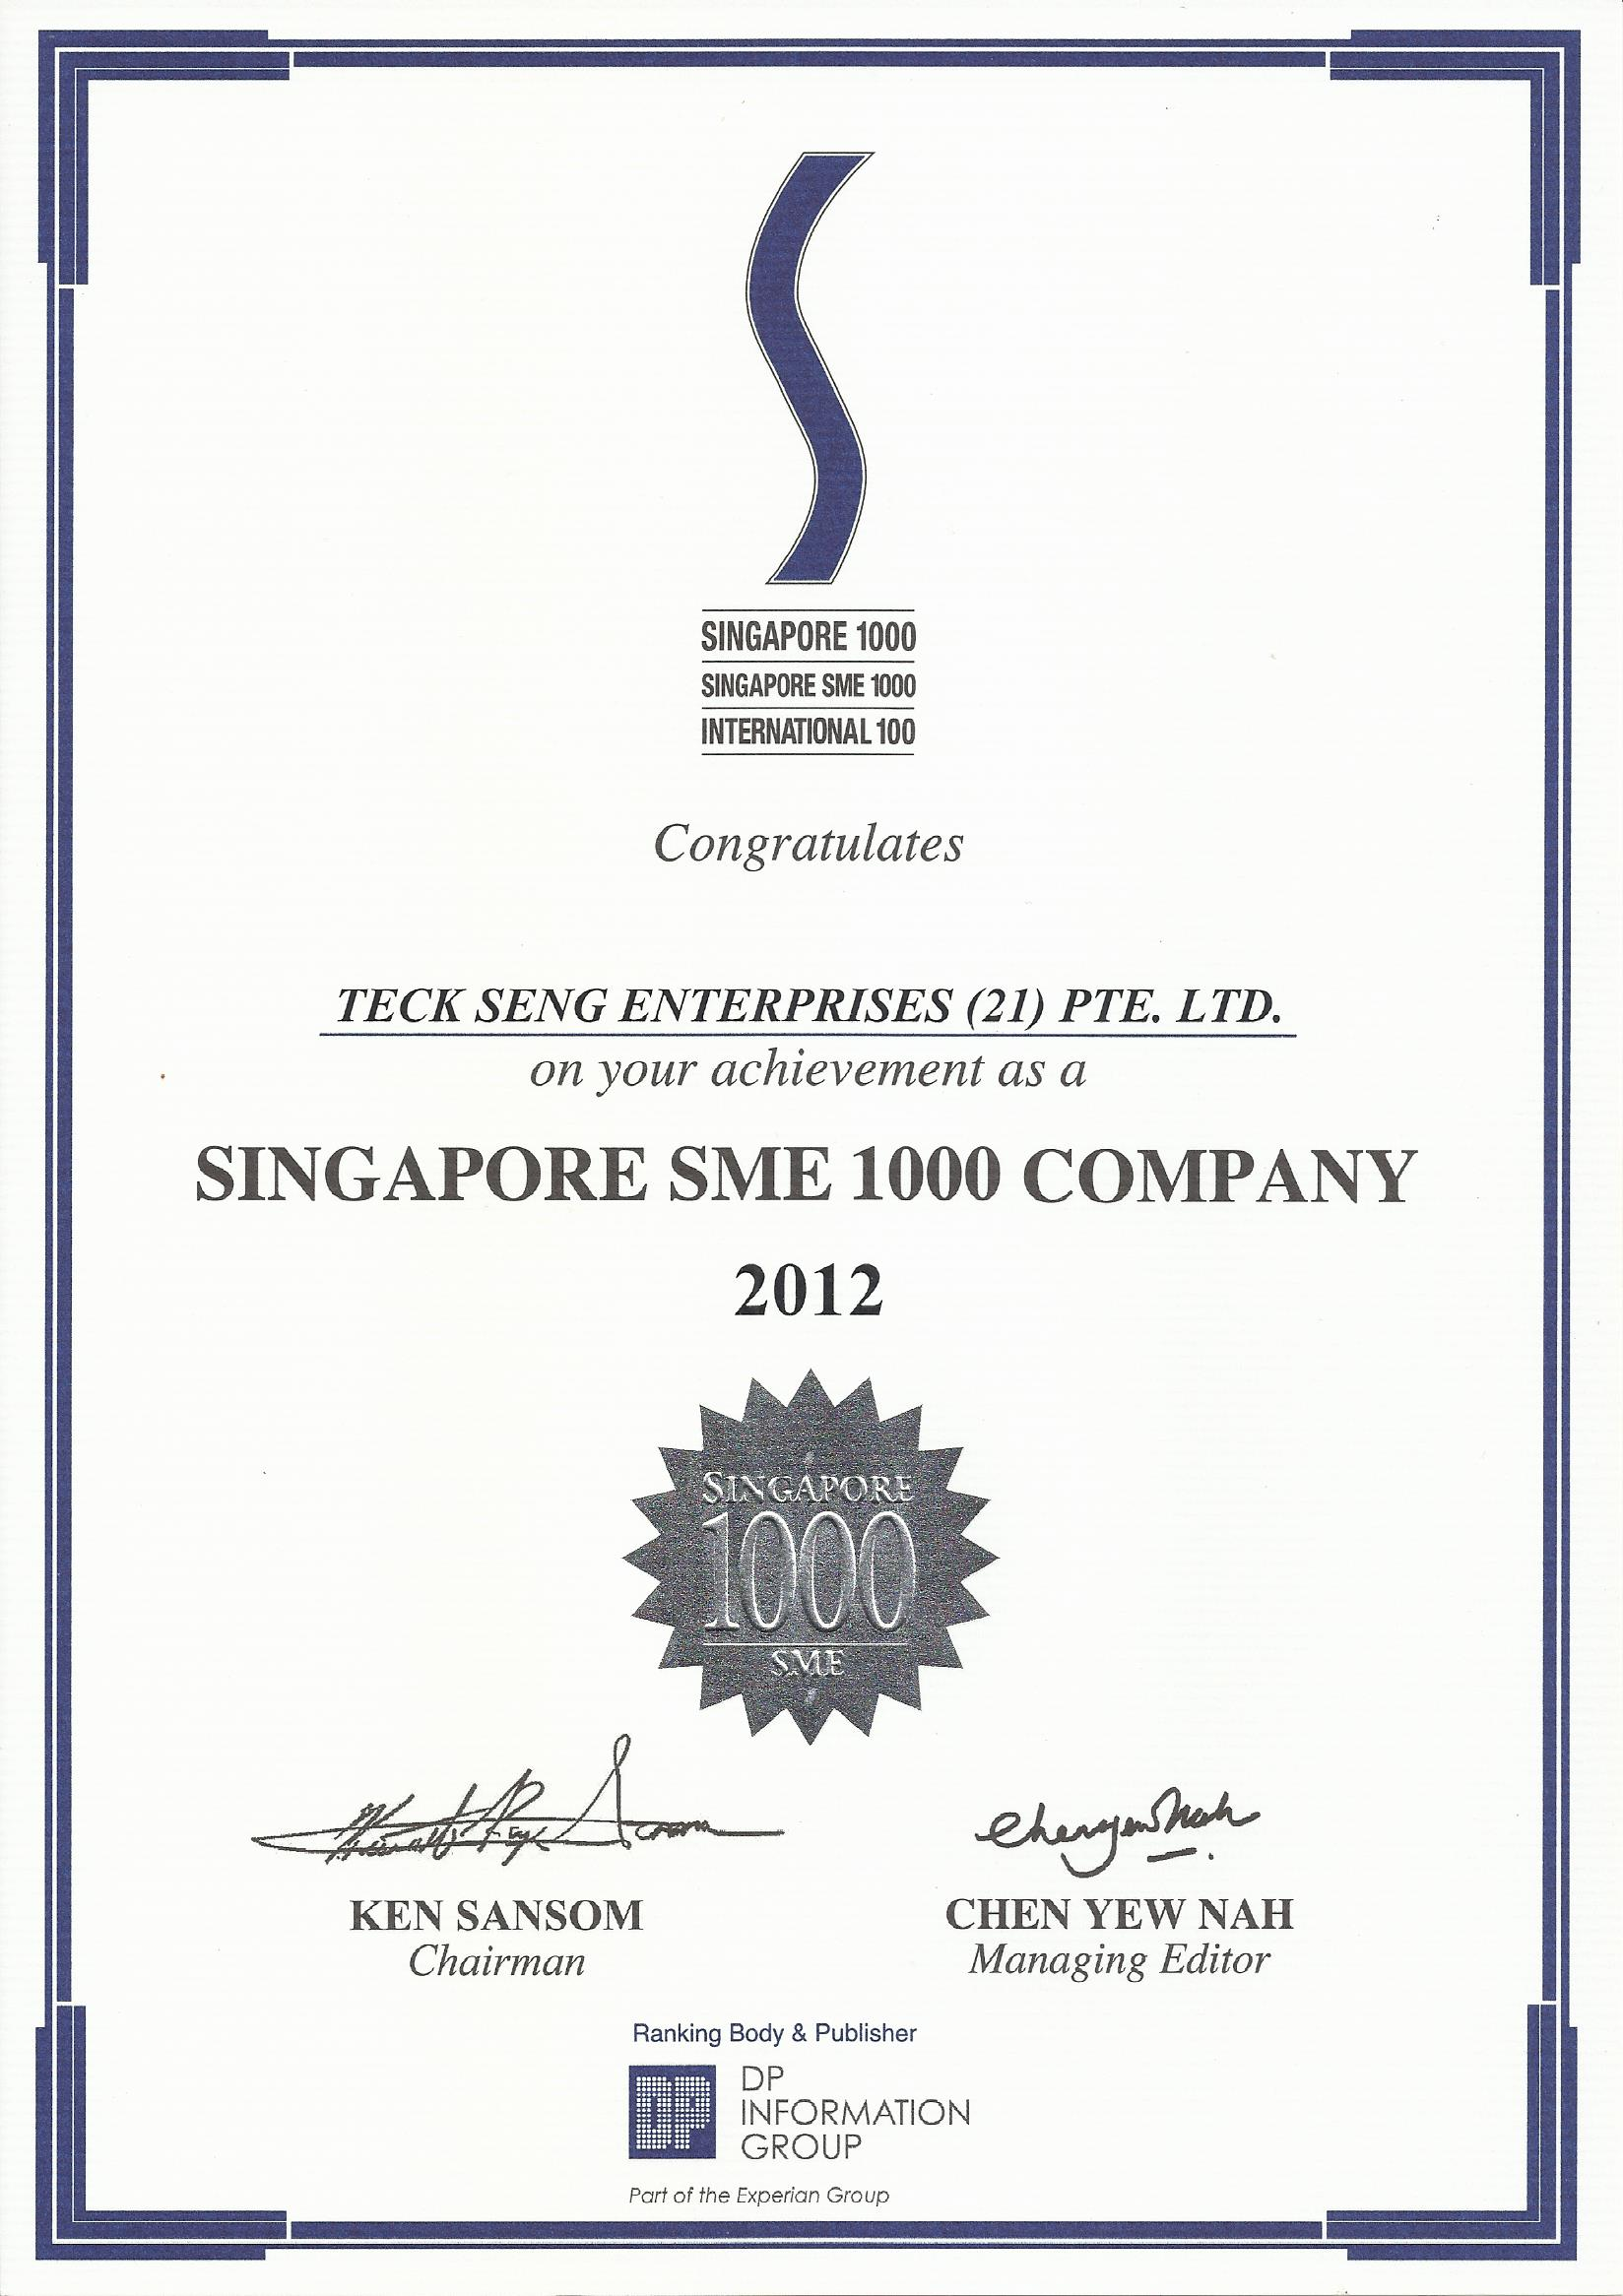 https://teckseng.com.sg//image/catalog/About Us/2012.jpg